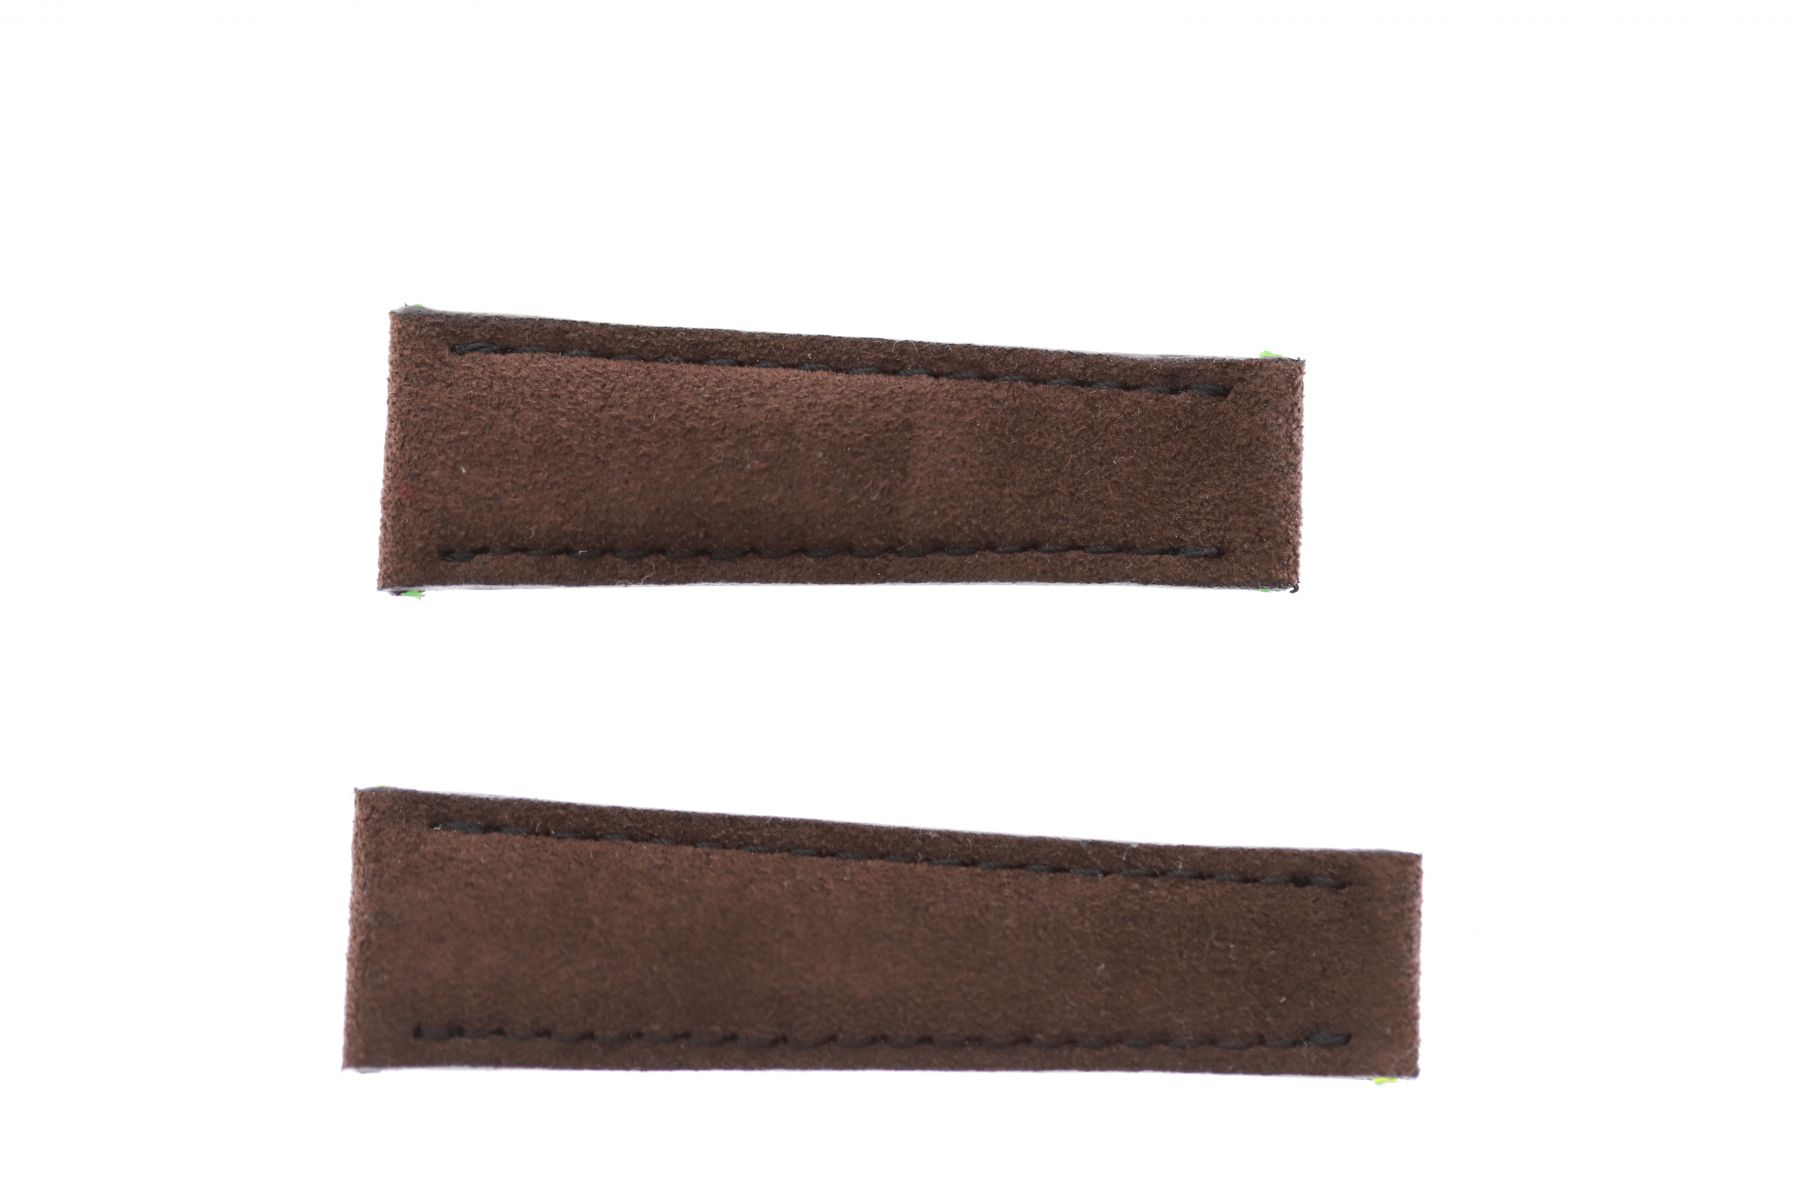 N5 Rich Brown Alcantara strap 20mm for Rolex Daytona style timepieces